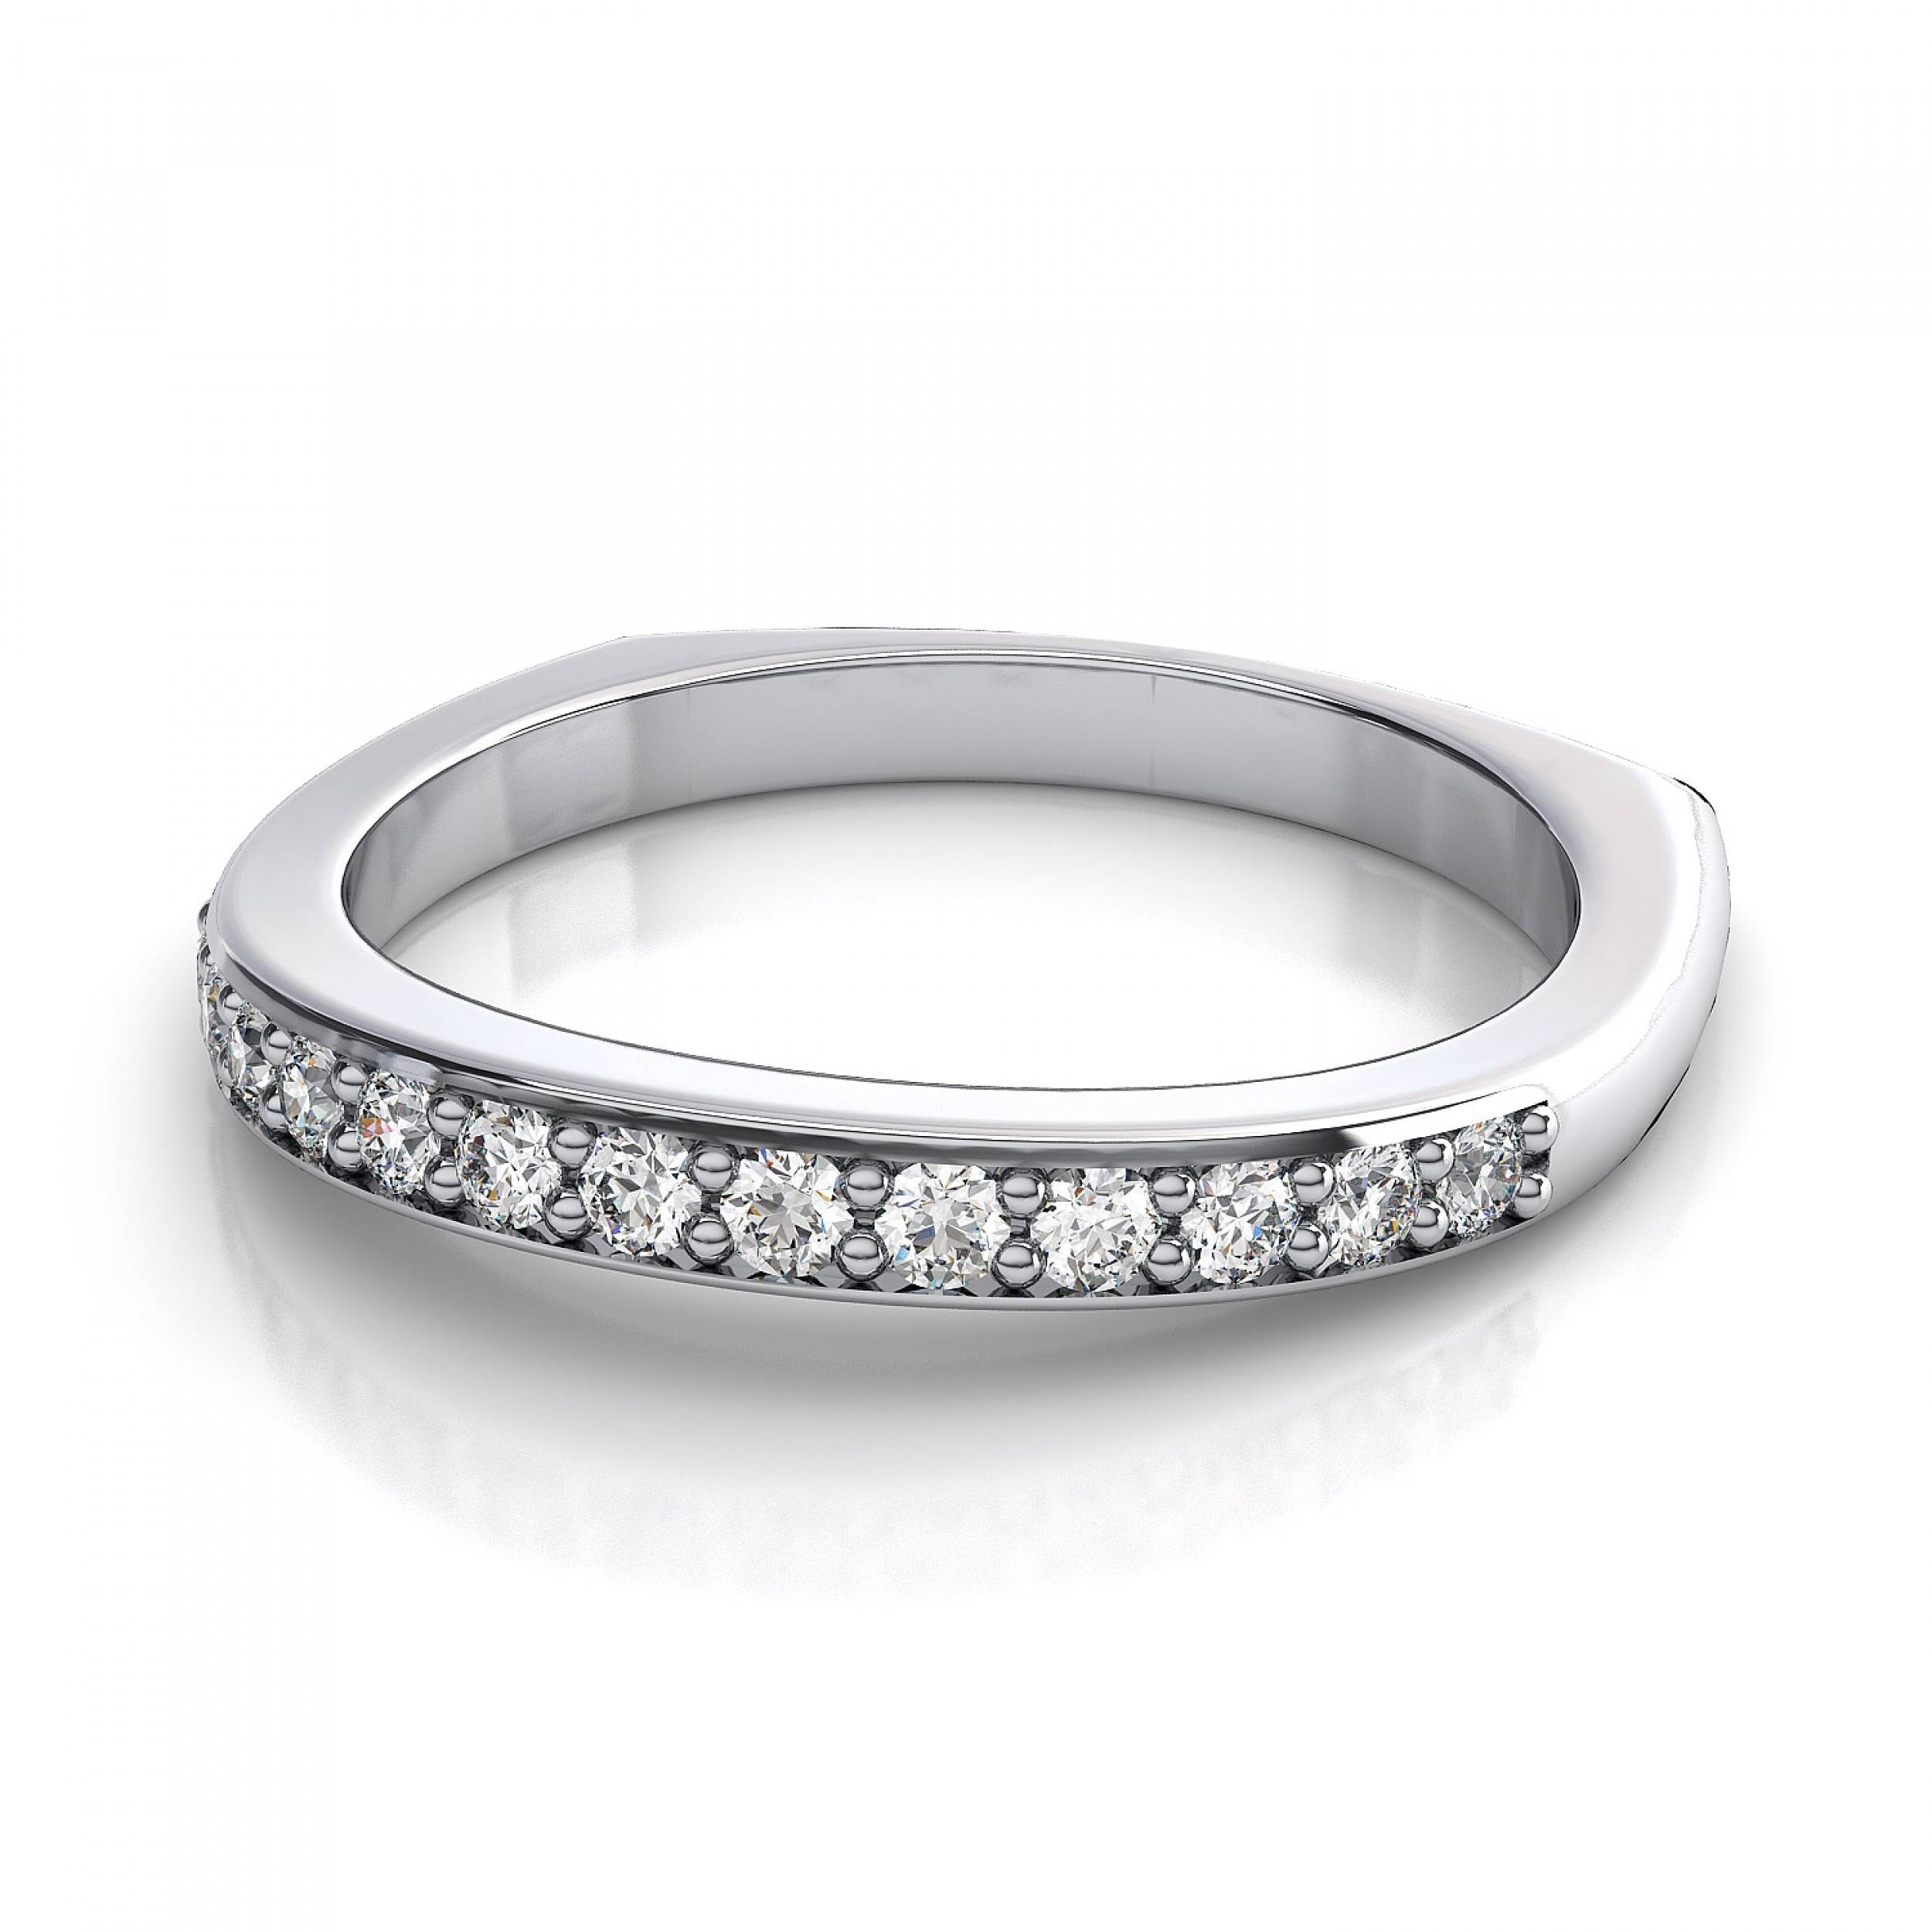 Wedding Rings : Pave Wedding Ring Micro Pave Eternity Band Womens Intended For Best And Newest Pave White Gold Diamond Wedding Bands (View 13 of 15)